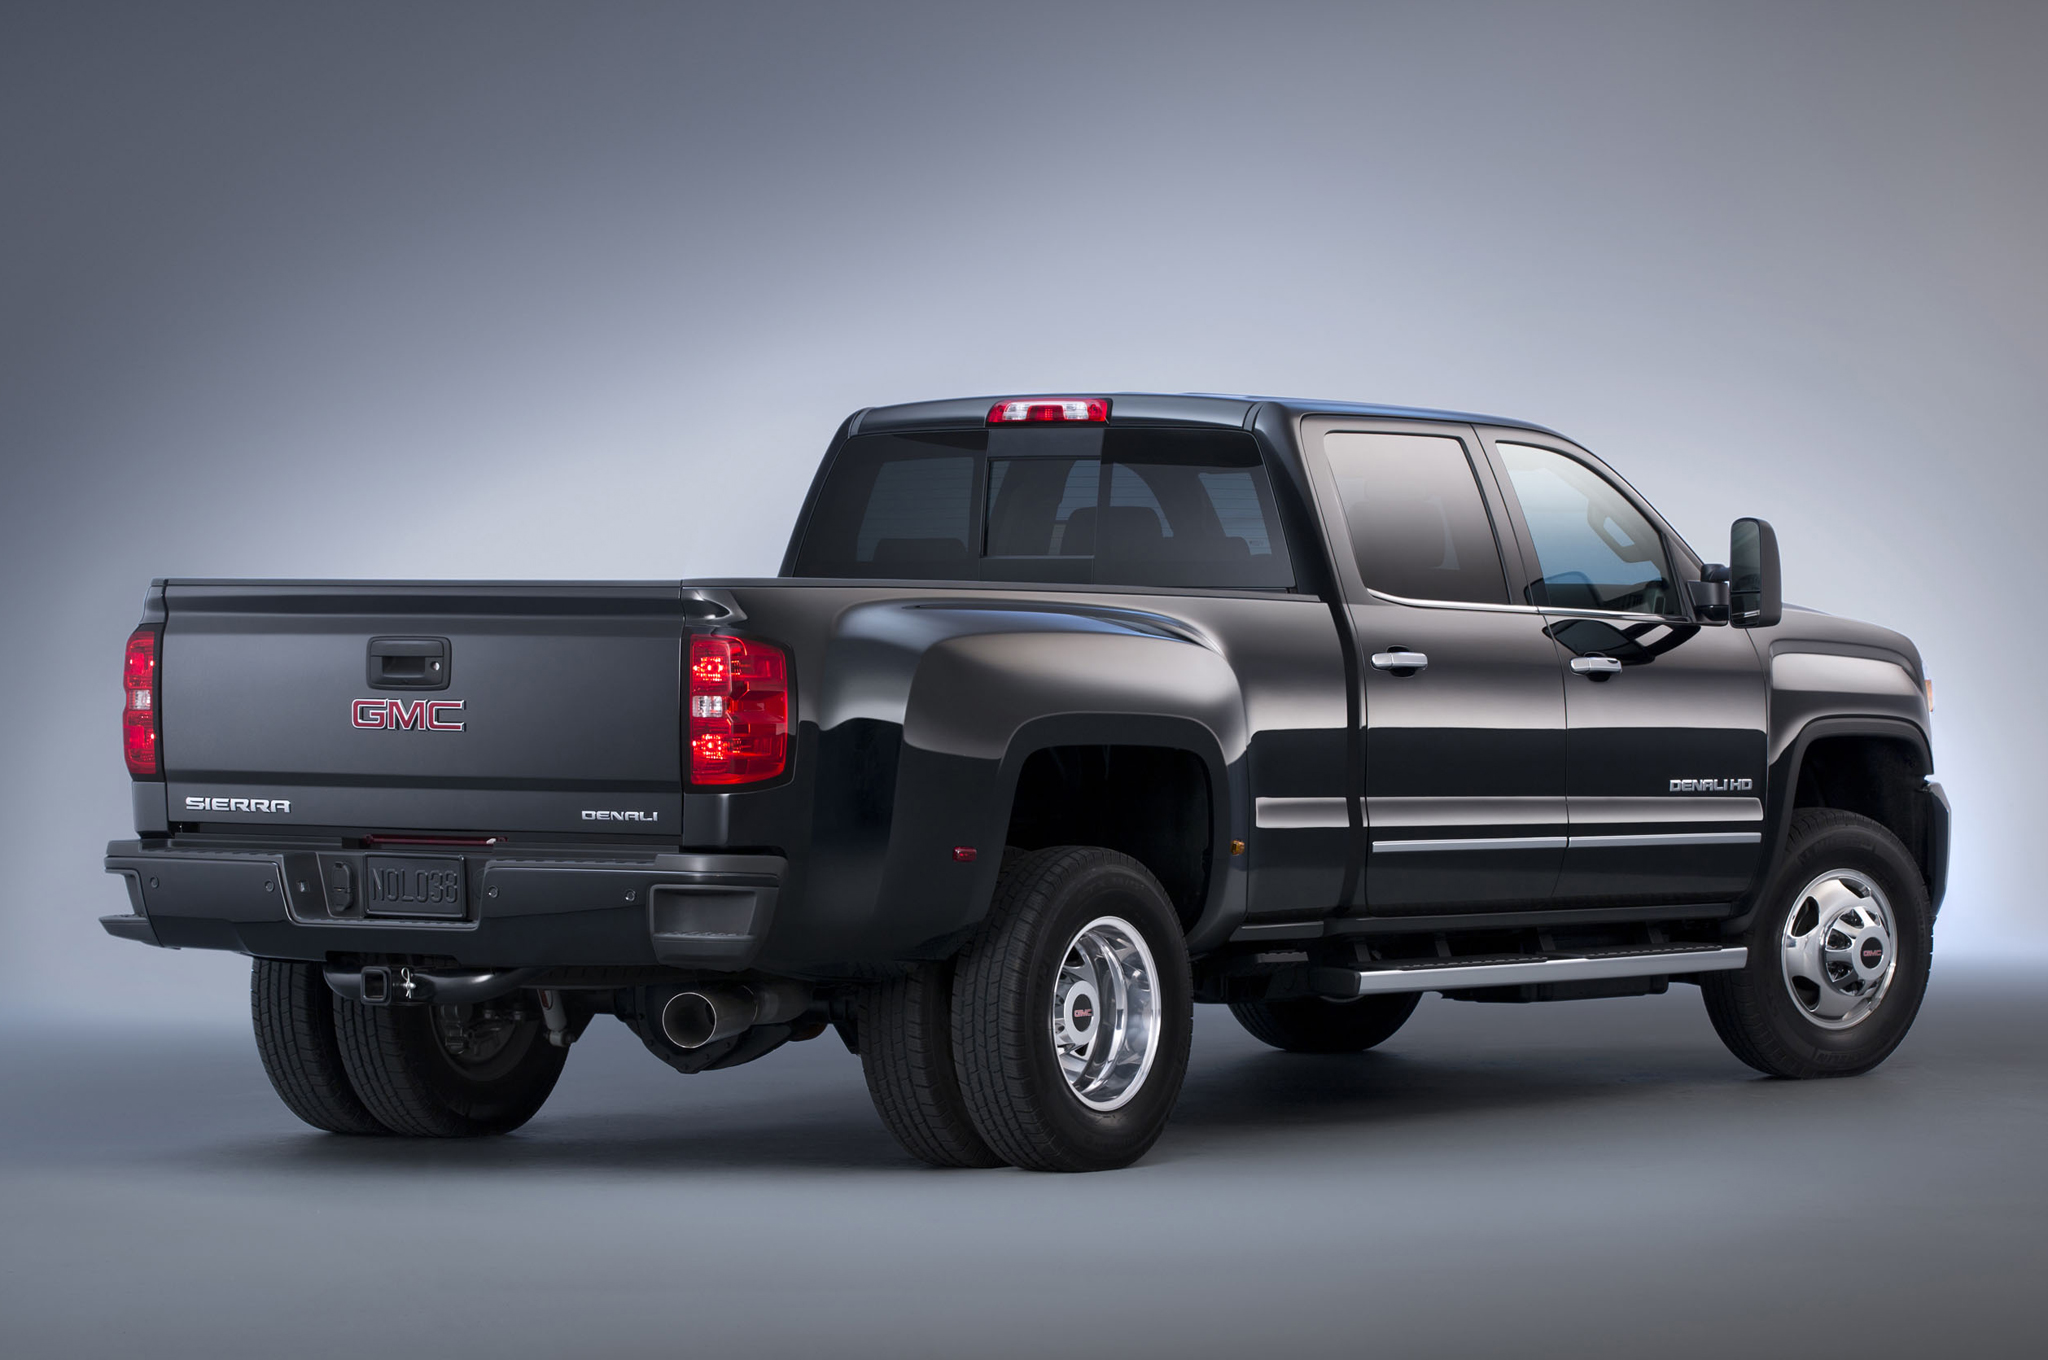 2015 GMC Sierra 3500hd #19